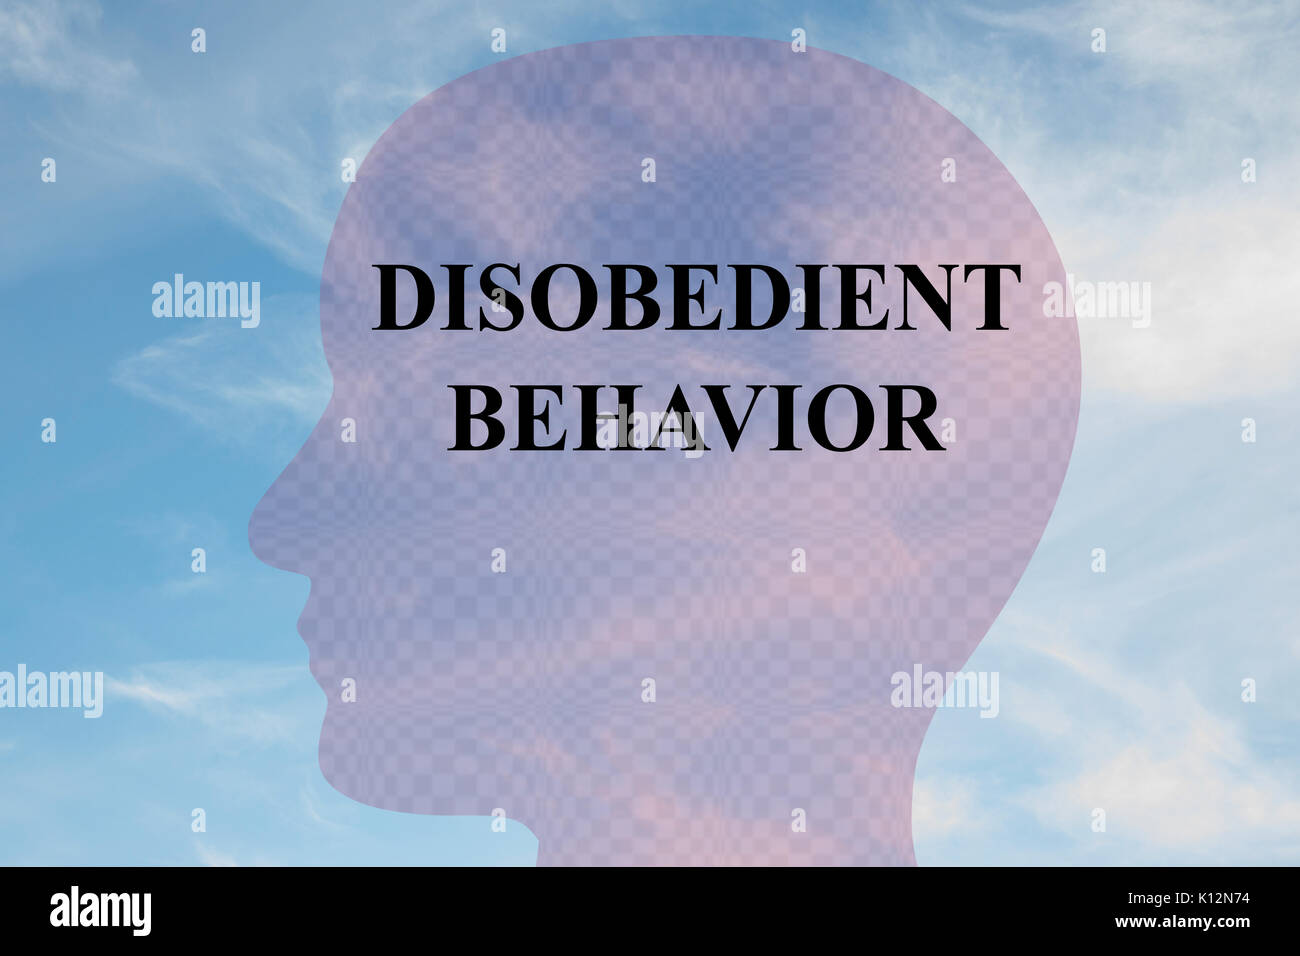 Render illustration of 'DISOBEDIENT BEHAVIOR' title on head silhouette, with cloudy sky as a background. - Stock Image